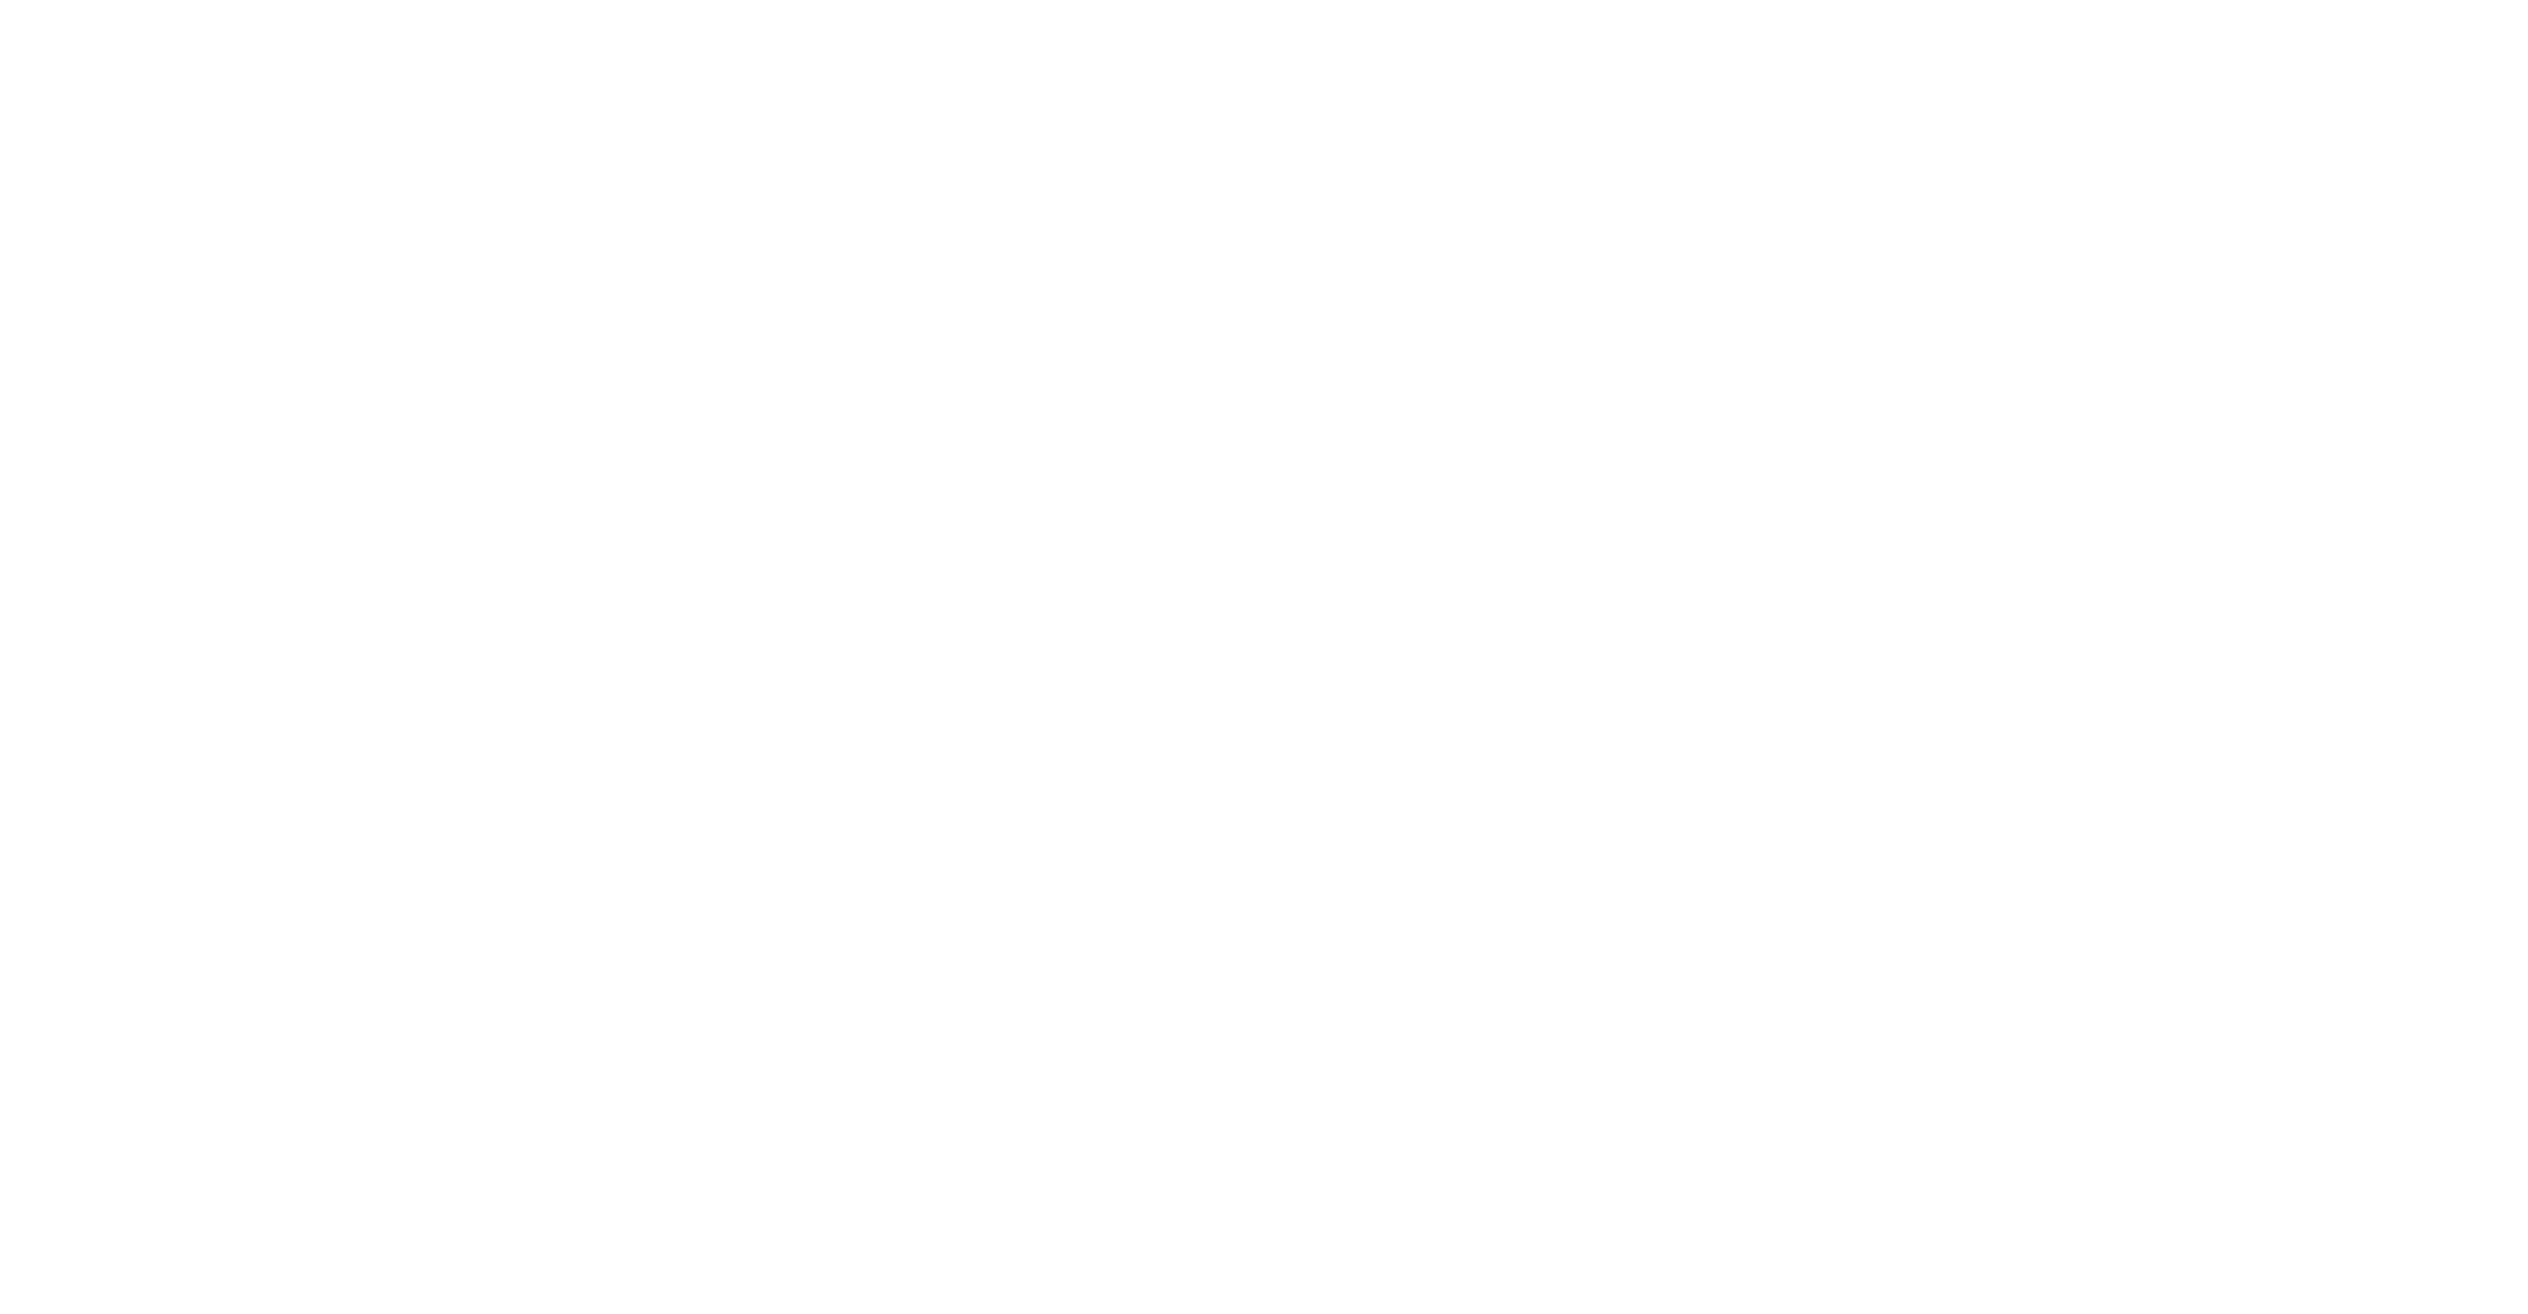 5 GUM TRUTH OR DARE: PLAY A PACK